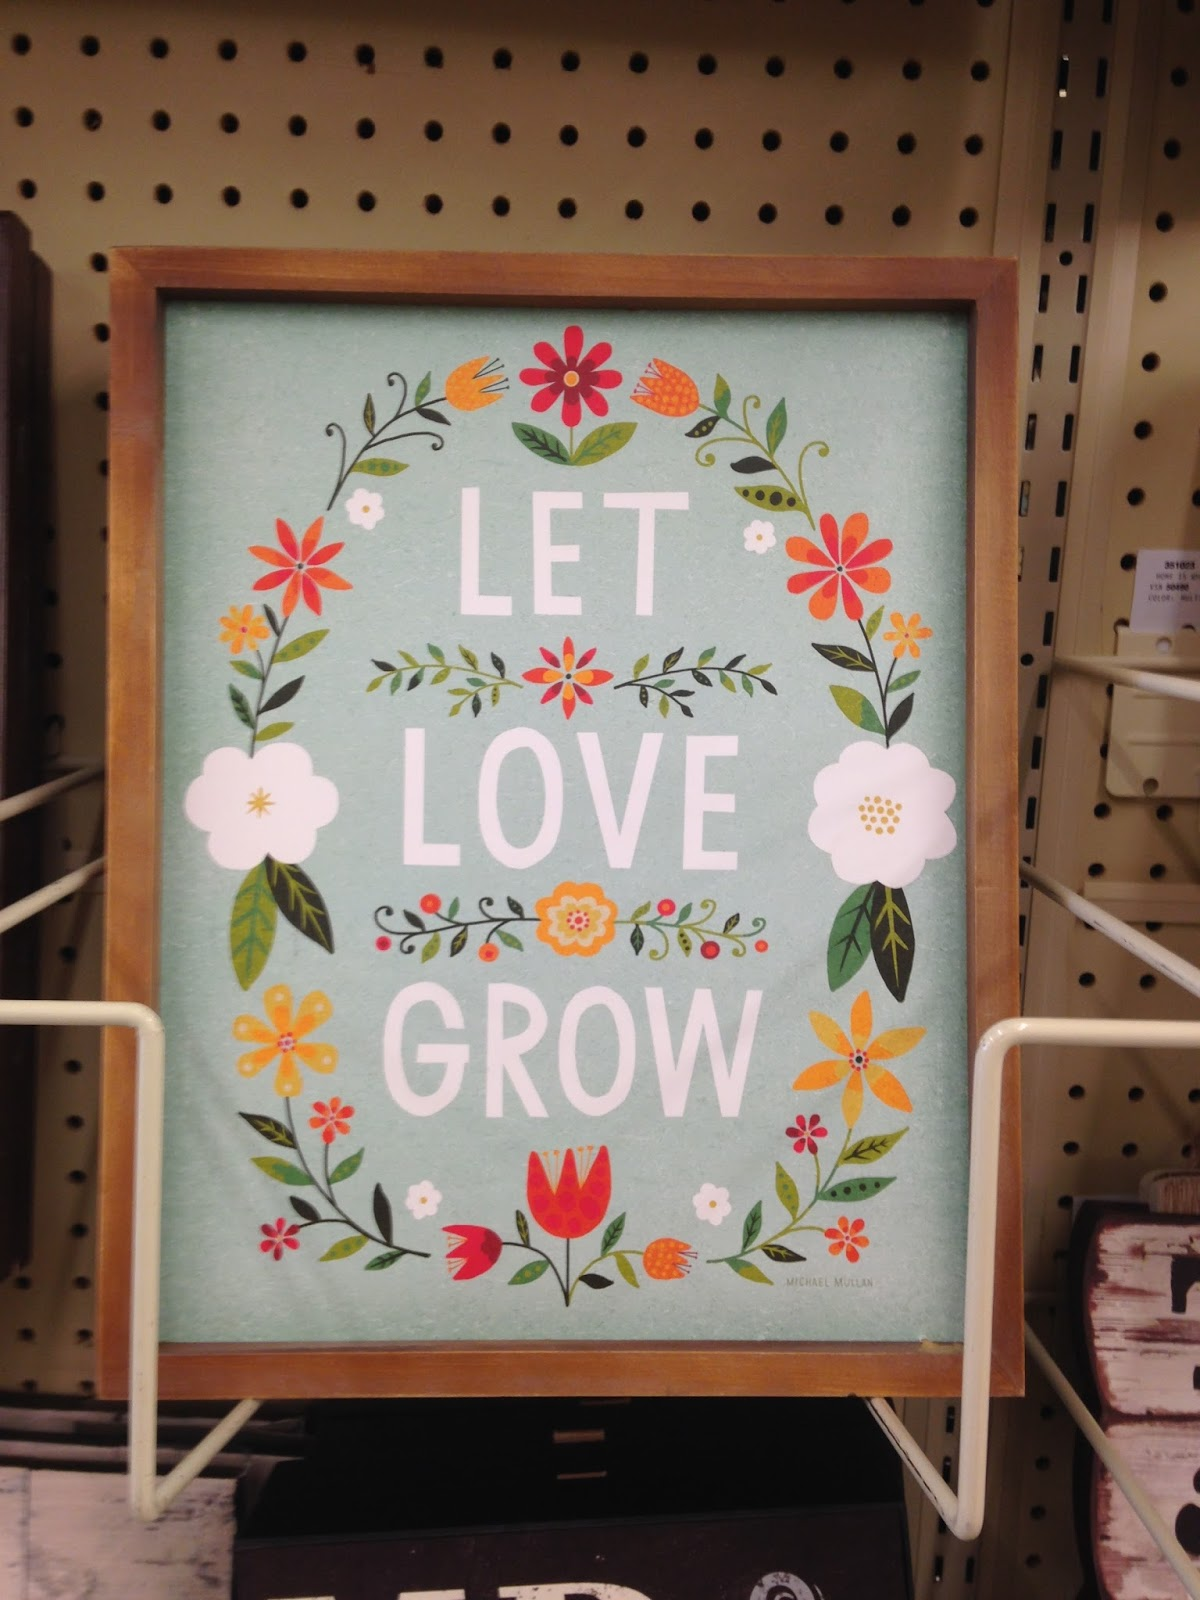 Lets go shopping pier one joann fabrics homegoods and hobby lets go shopping decor inspiration from pier one joann fabrics homegoods and jeuxipadfo Image collections